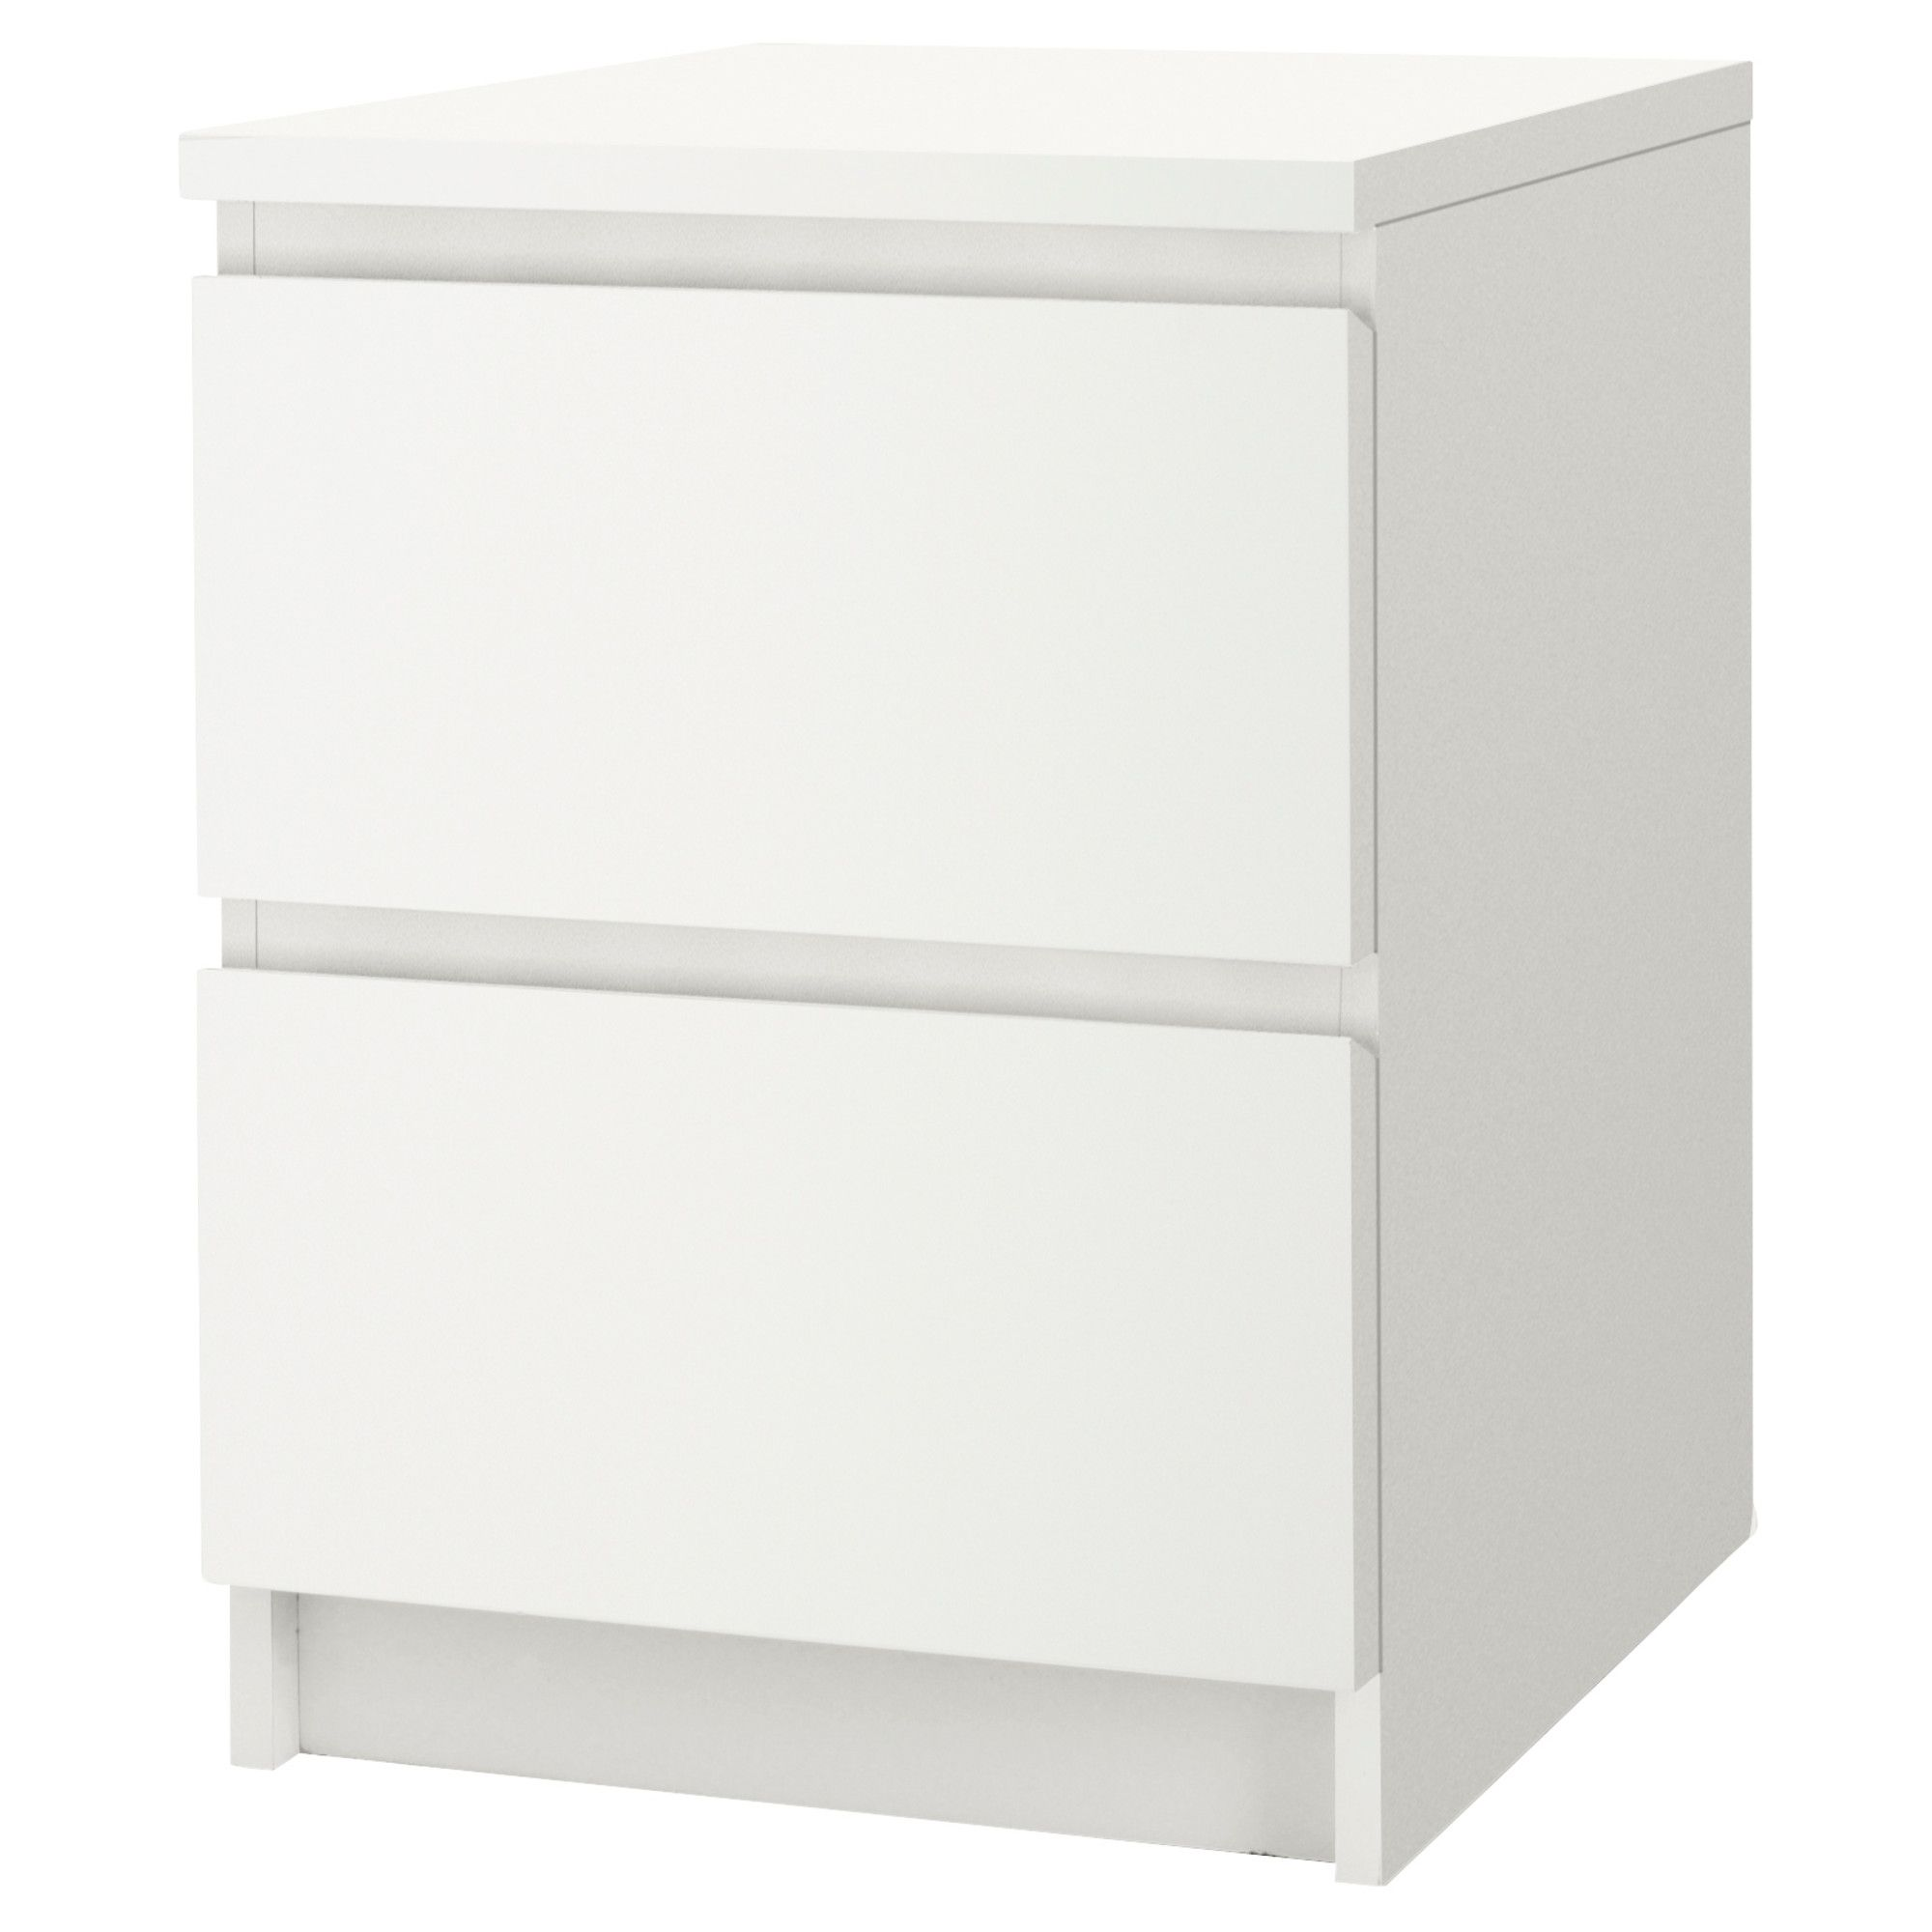 Ikea Malm Drawer Chest White Can Also Be Used